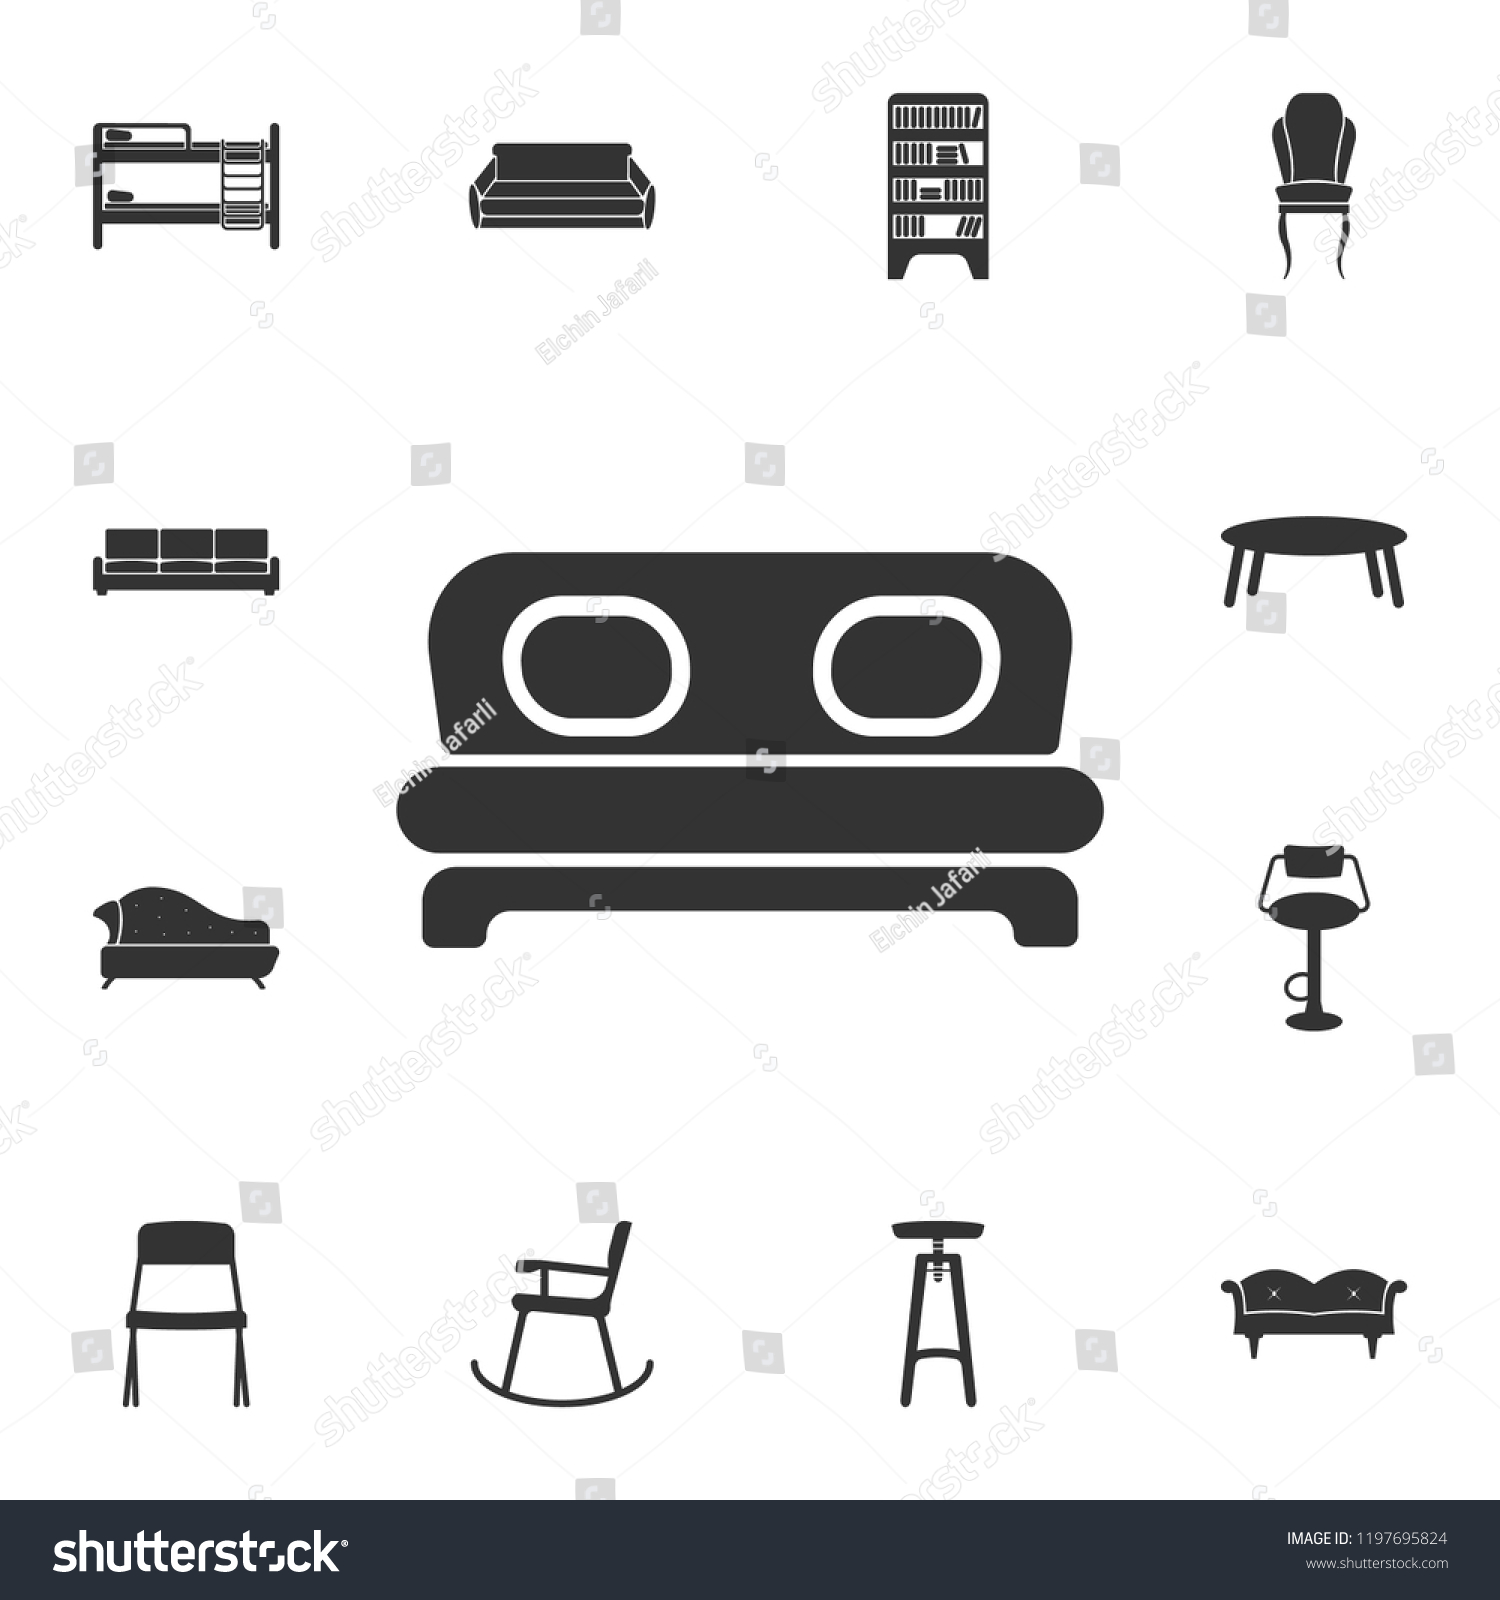 Royalty Free Stock Illustration Of Sofa Icon Detailed Set Furniture